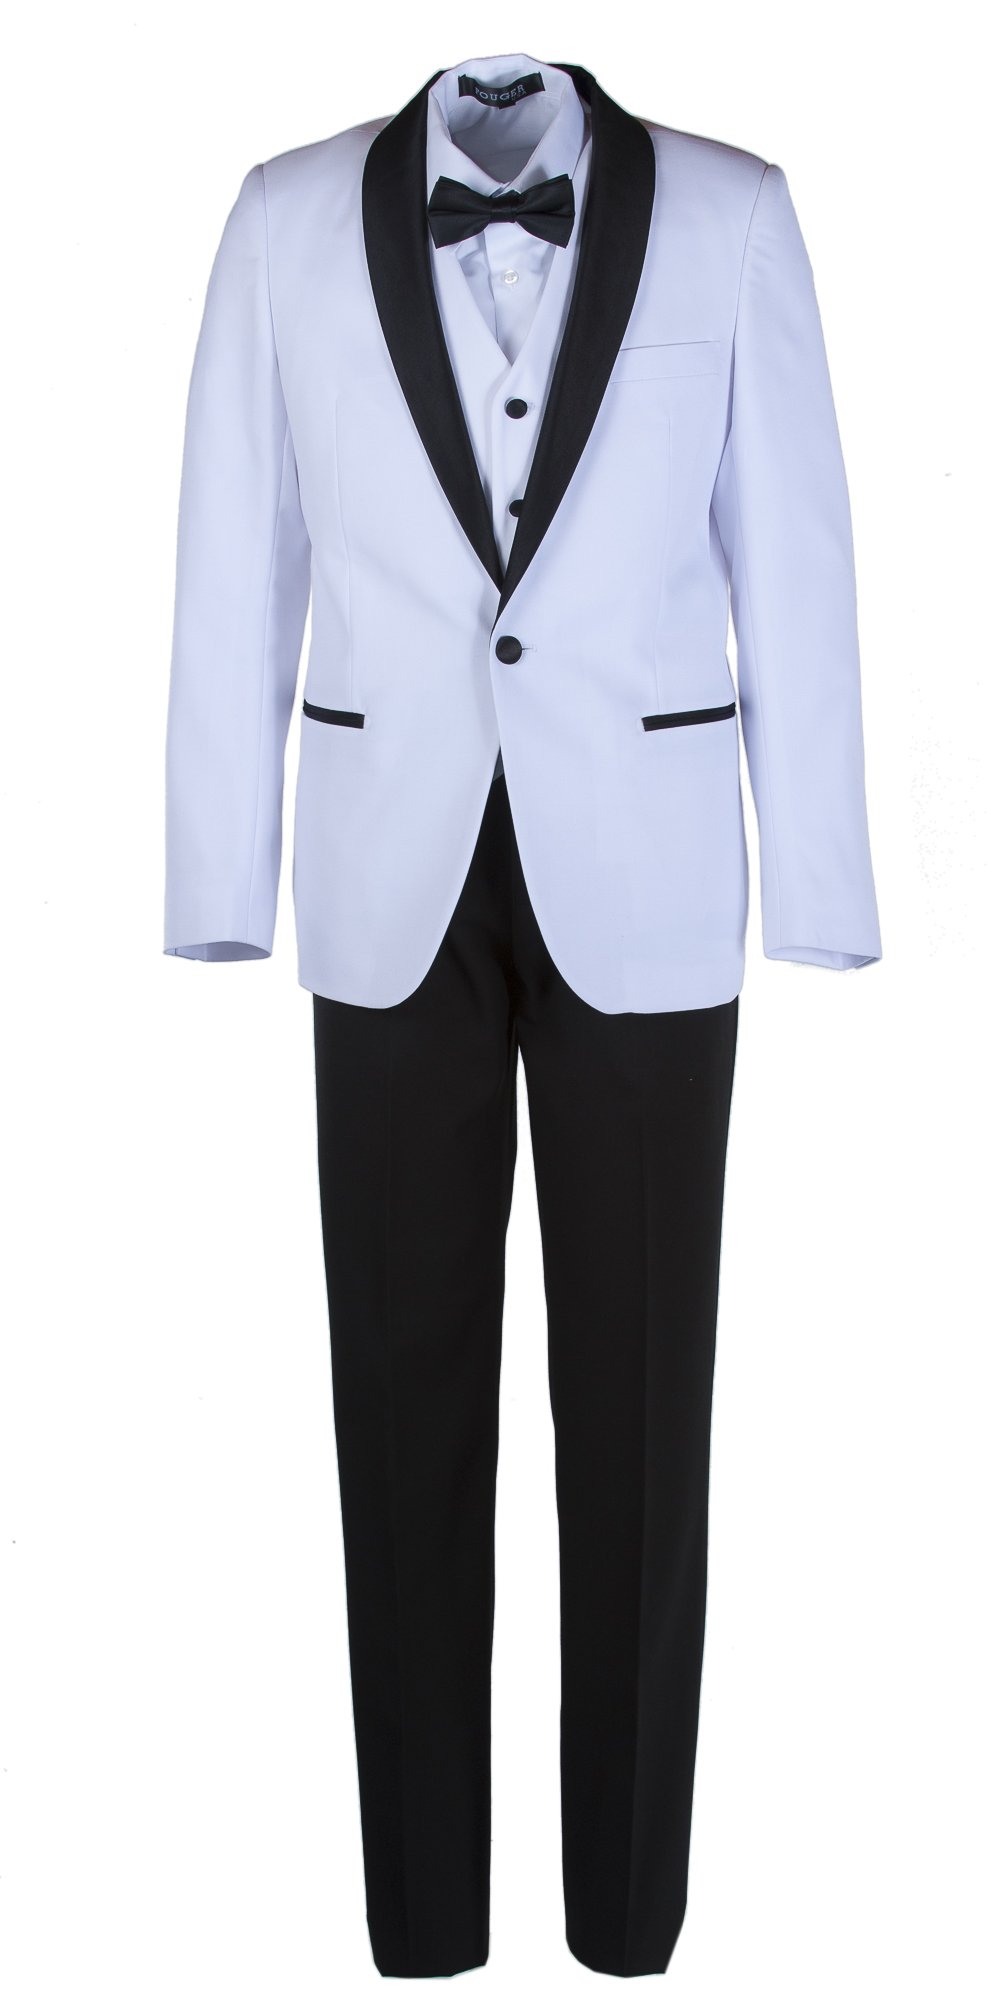 Boys Slim Fit White & Black Shawl Dinner Suit in Toddlers to Boys Sizing (18 Boys)